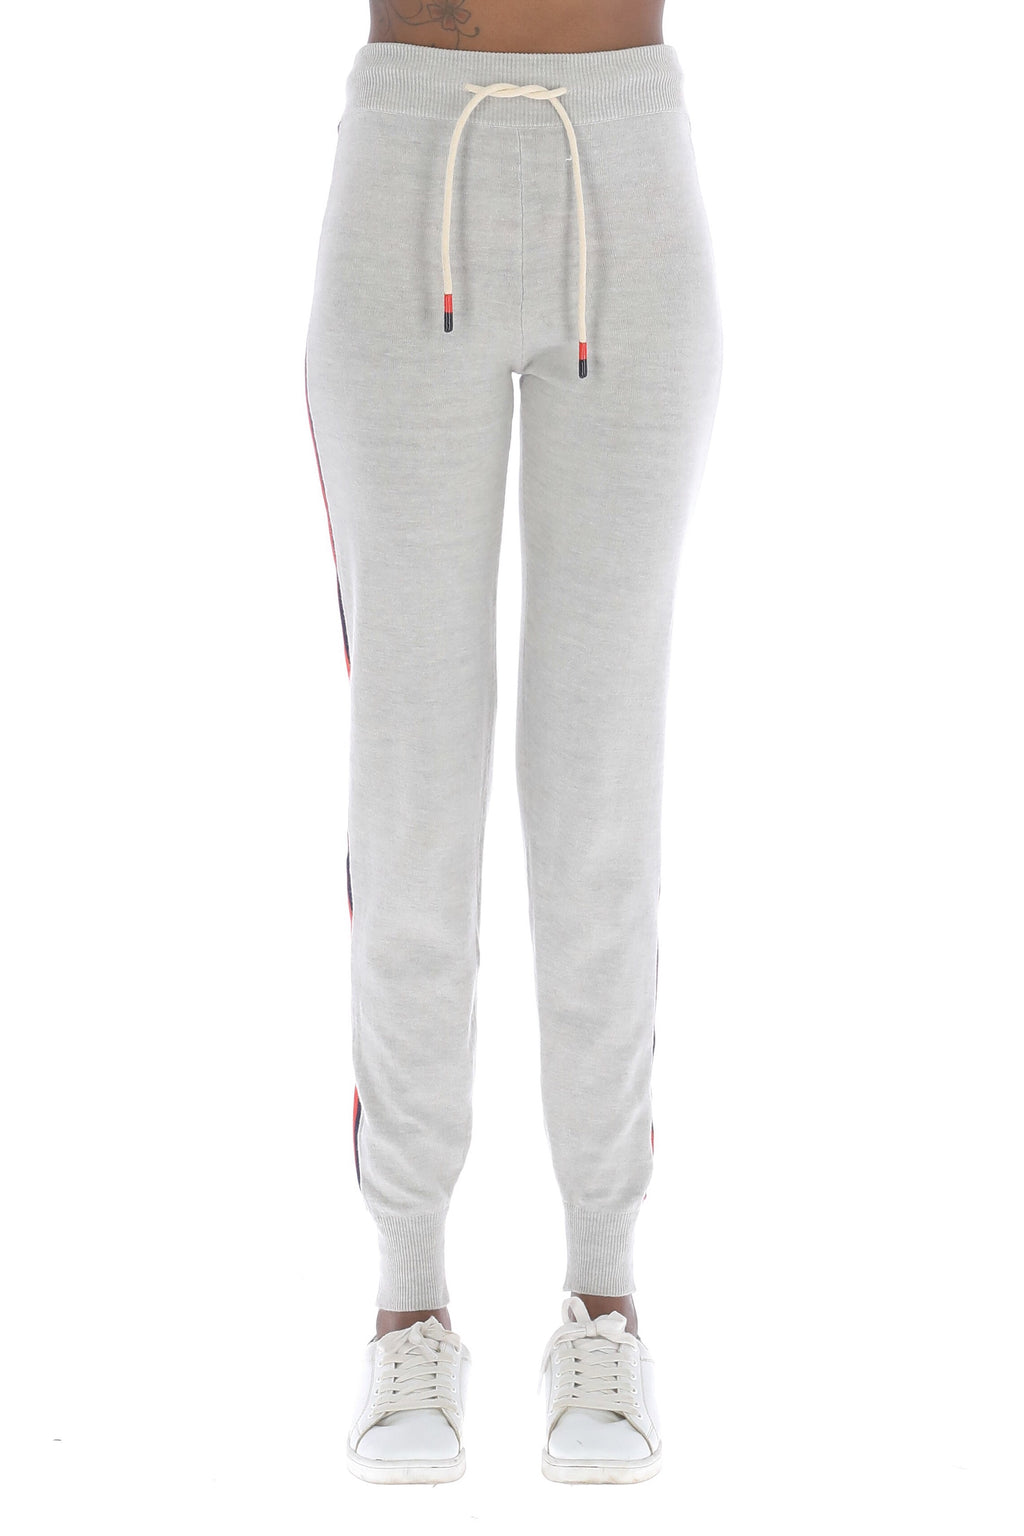 Grey jogger pants with red and navy stripe